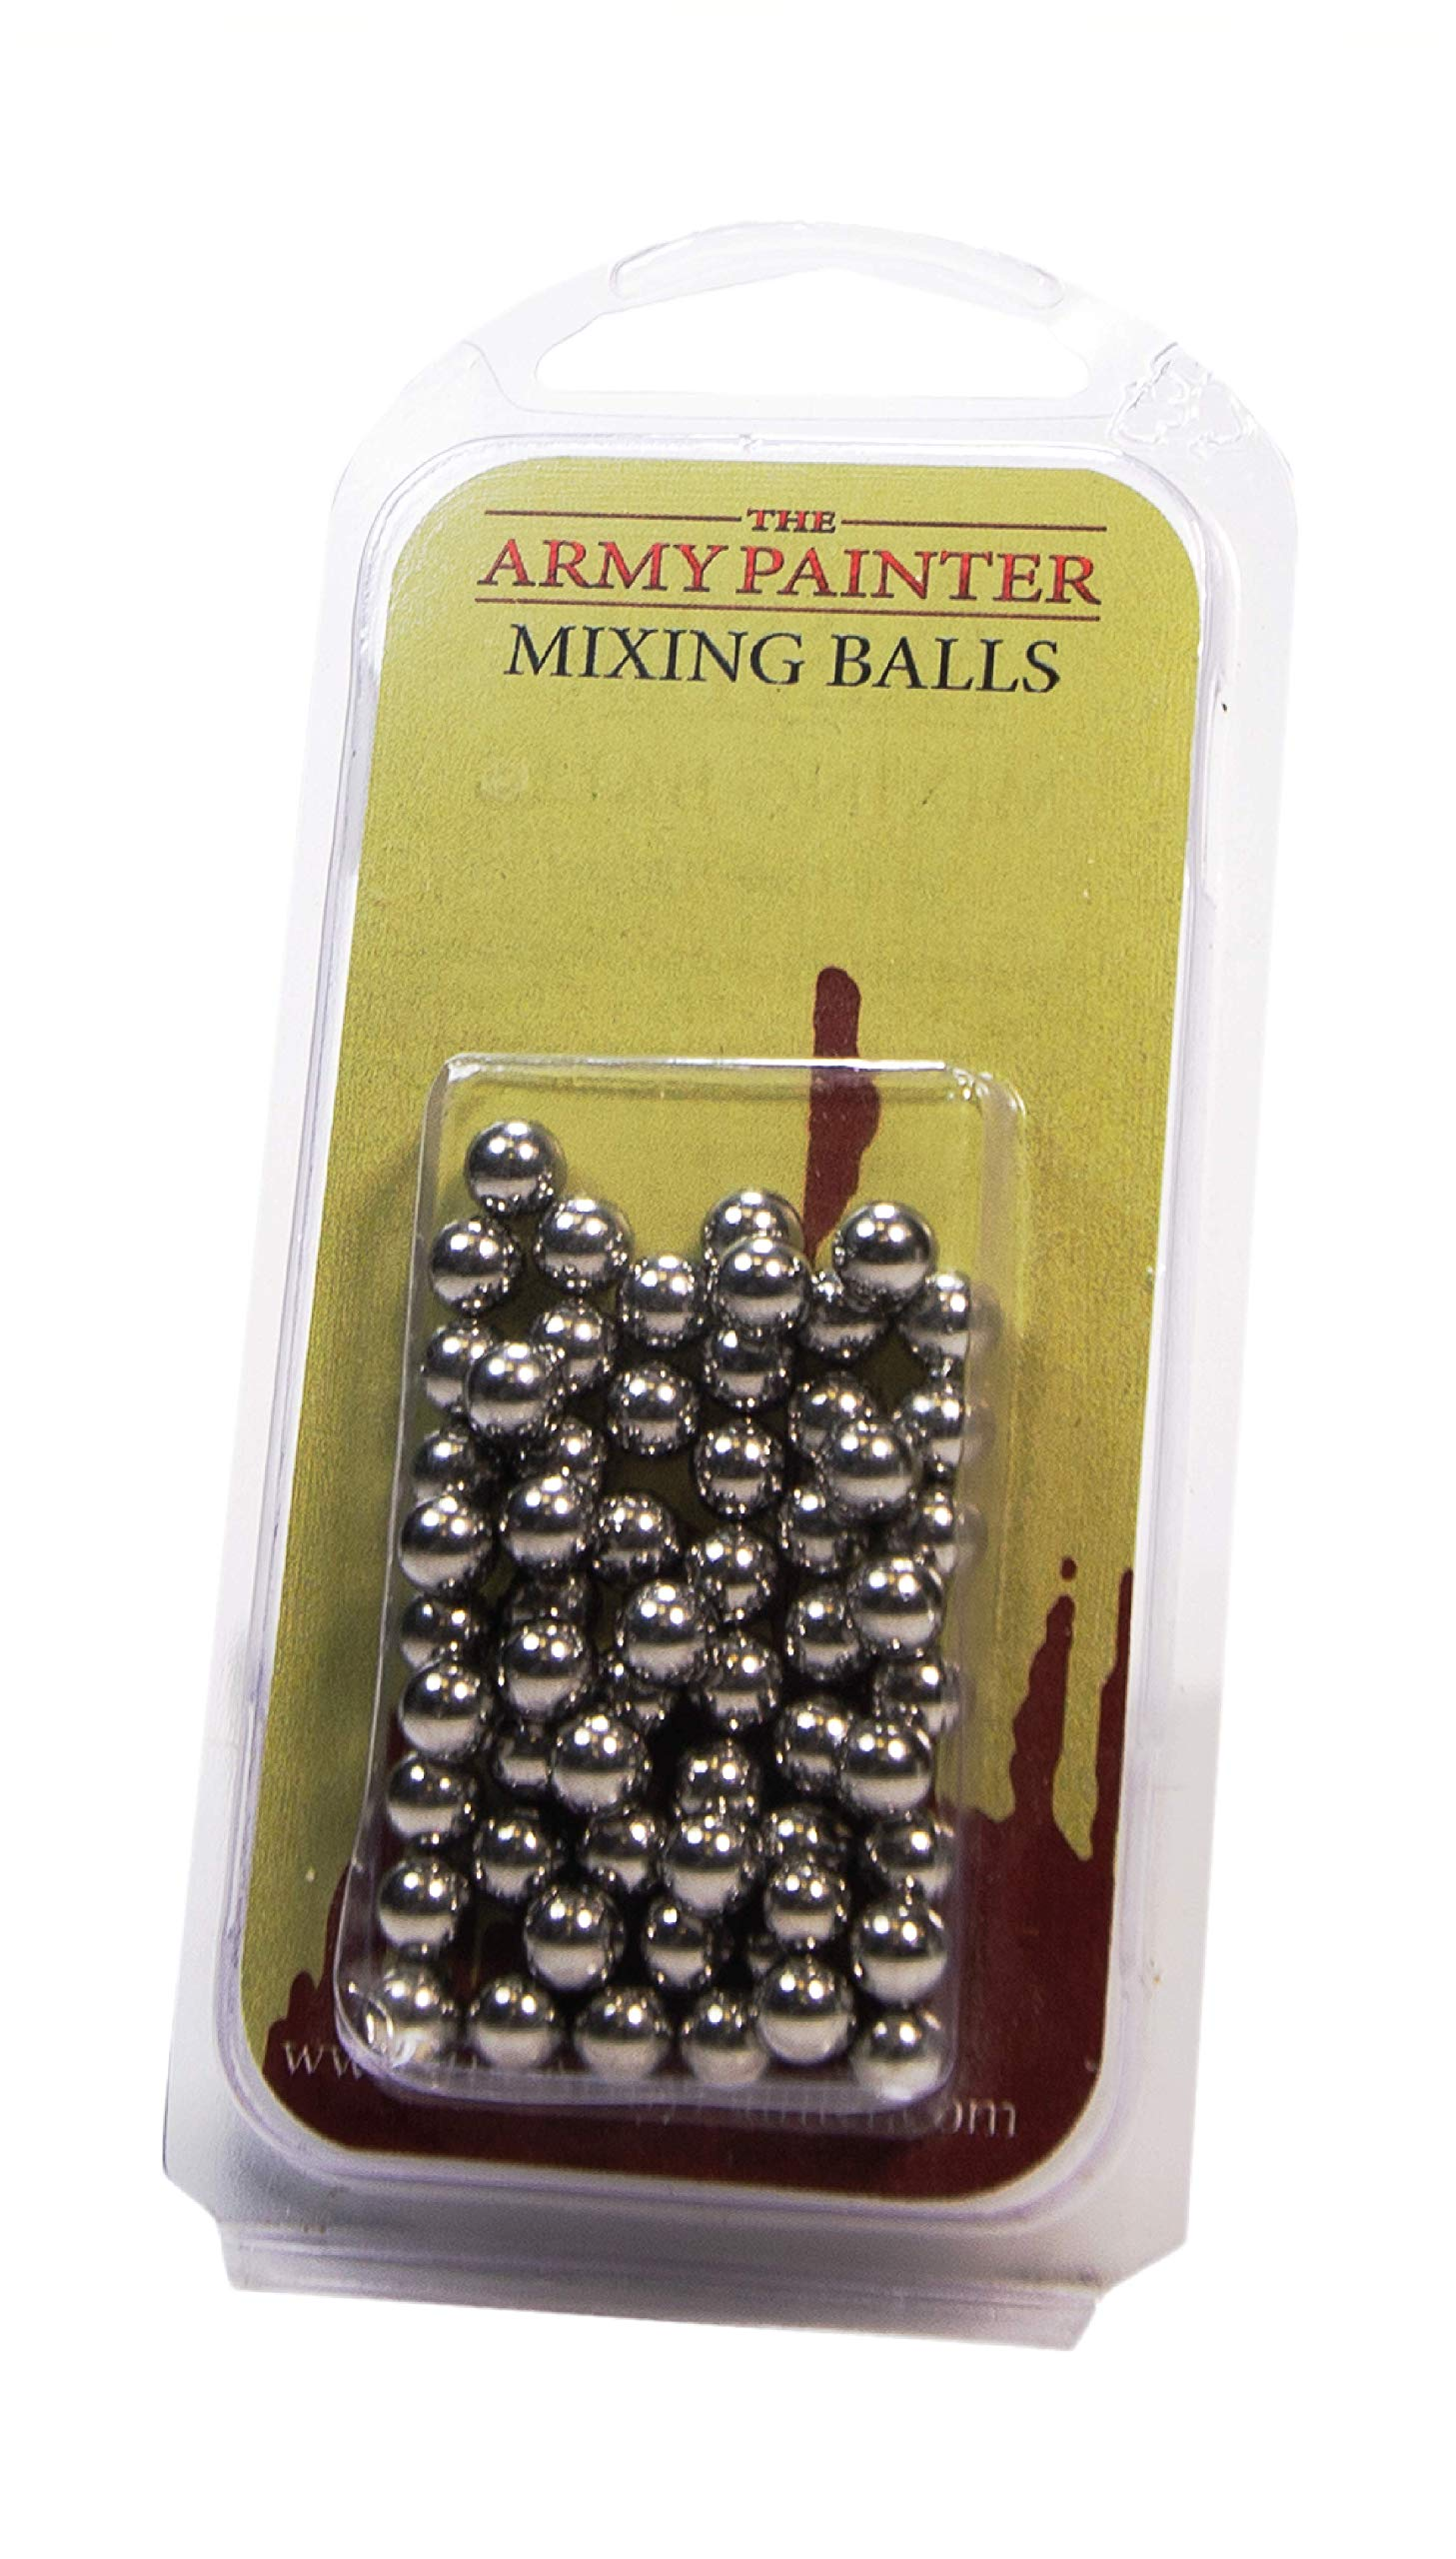 The Army Painter Paint Mixing Balls - Rust-proof Stainless Steel Balls for Mixing Model Paints - Stainless Steel Mixing Agitator Balls, 5.5mm/apr. 0.22'', 100 Pcs